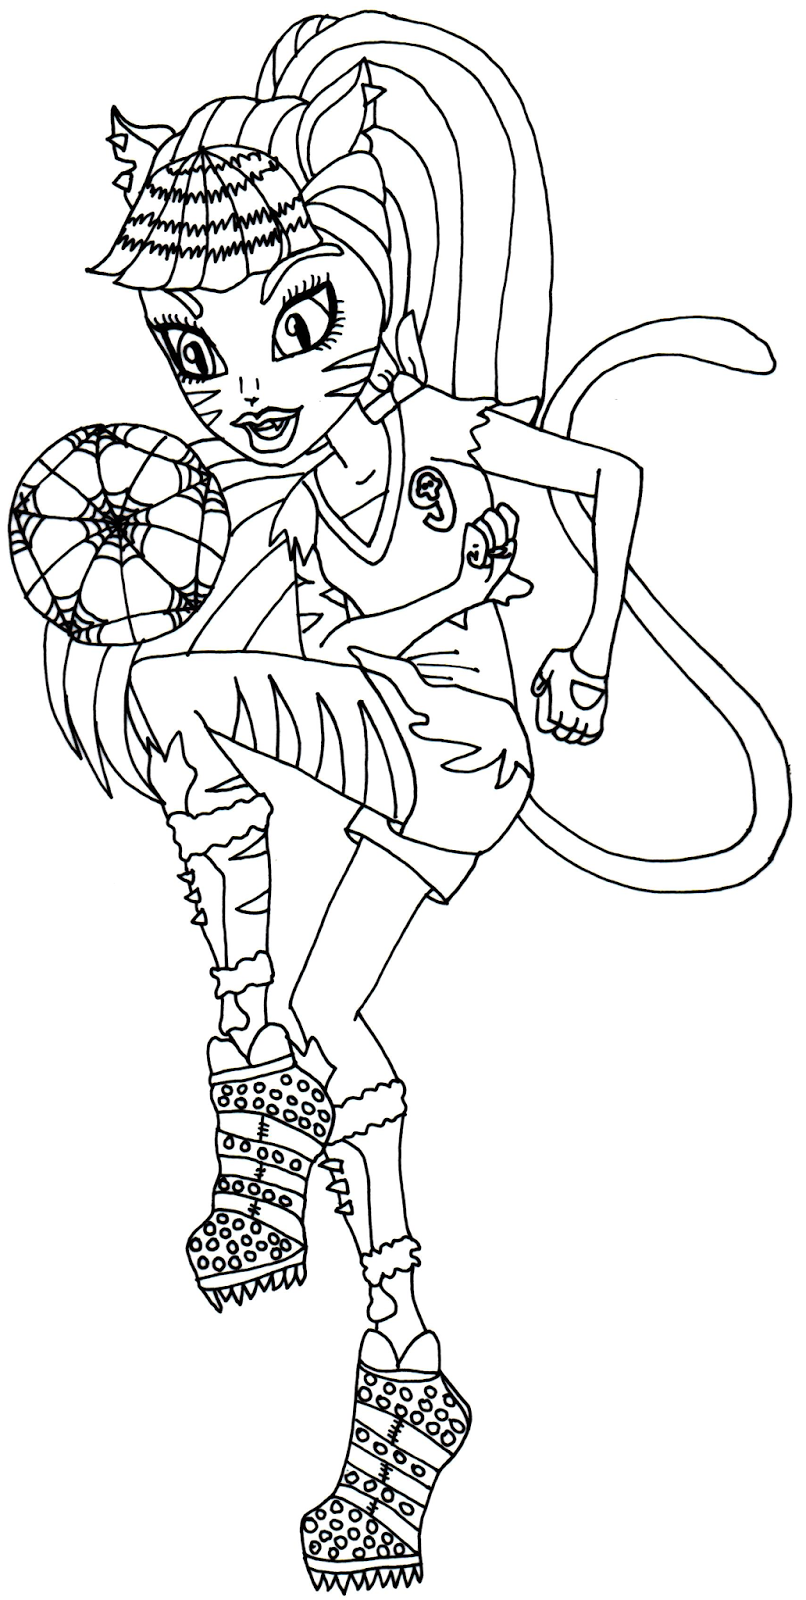 Monster High (42) - Printable coloring pages